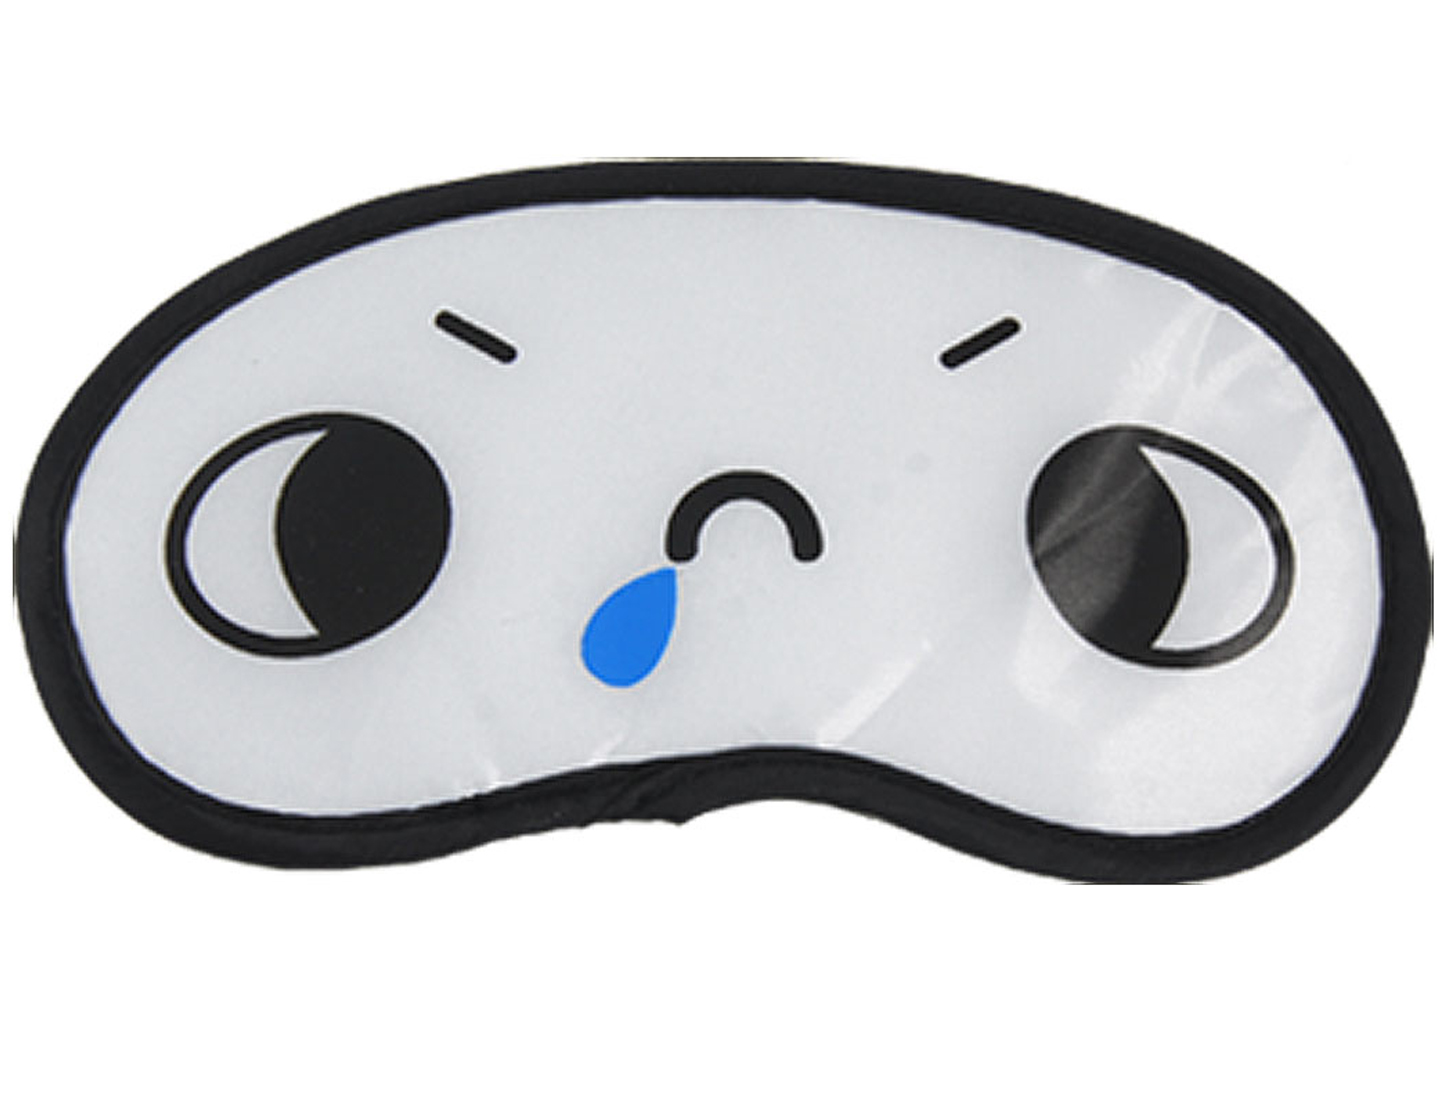 2 Pcs White Cartoon Crosseyes Pattern Sleeping Eye Cover Mask Eyeshade